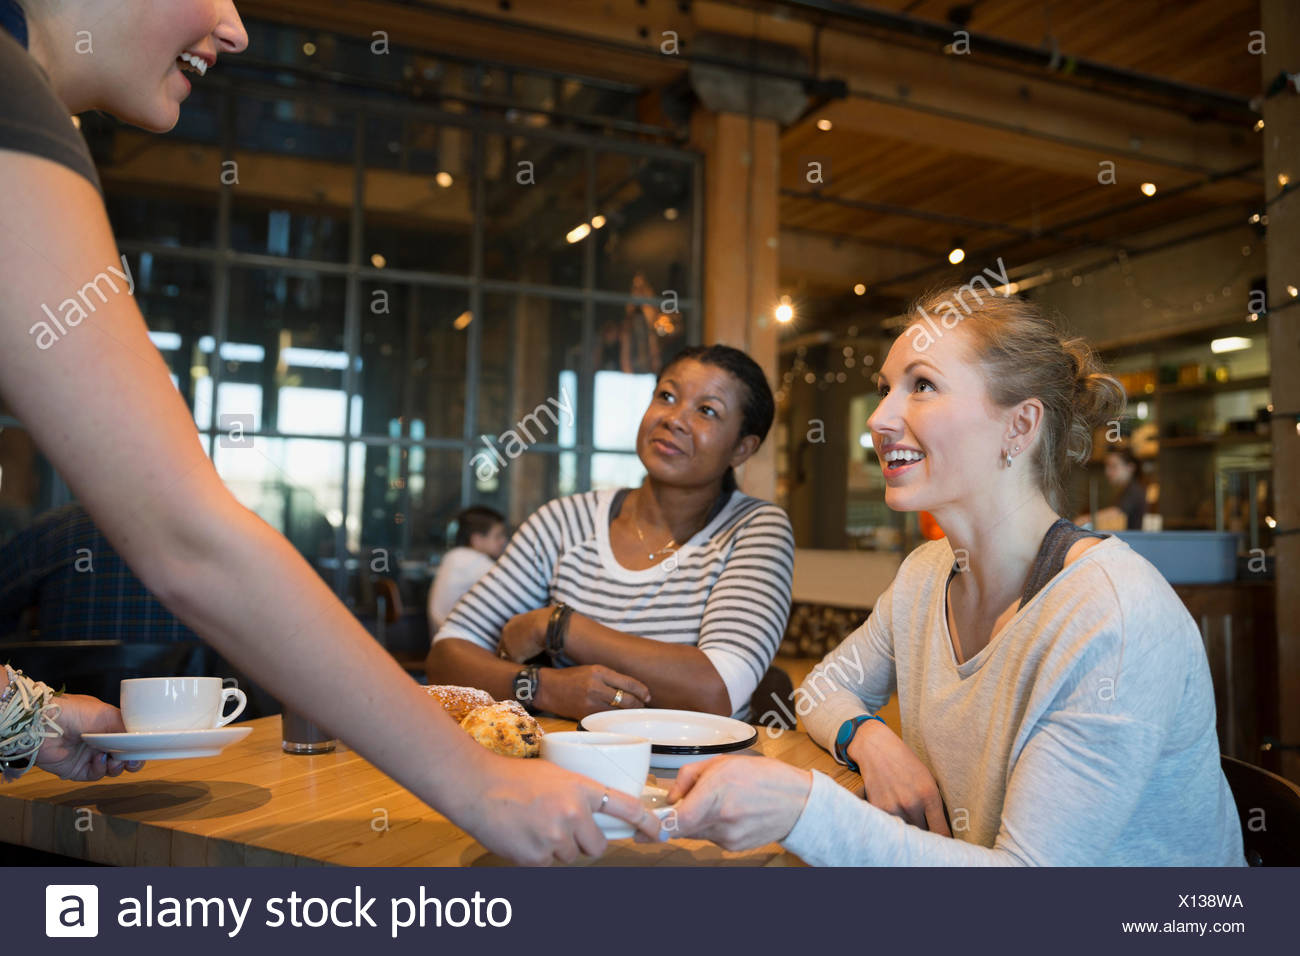 Bakery worker serving coffee to customers - Stock Image